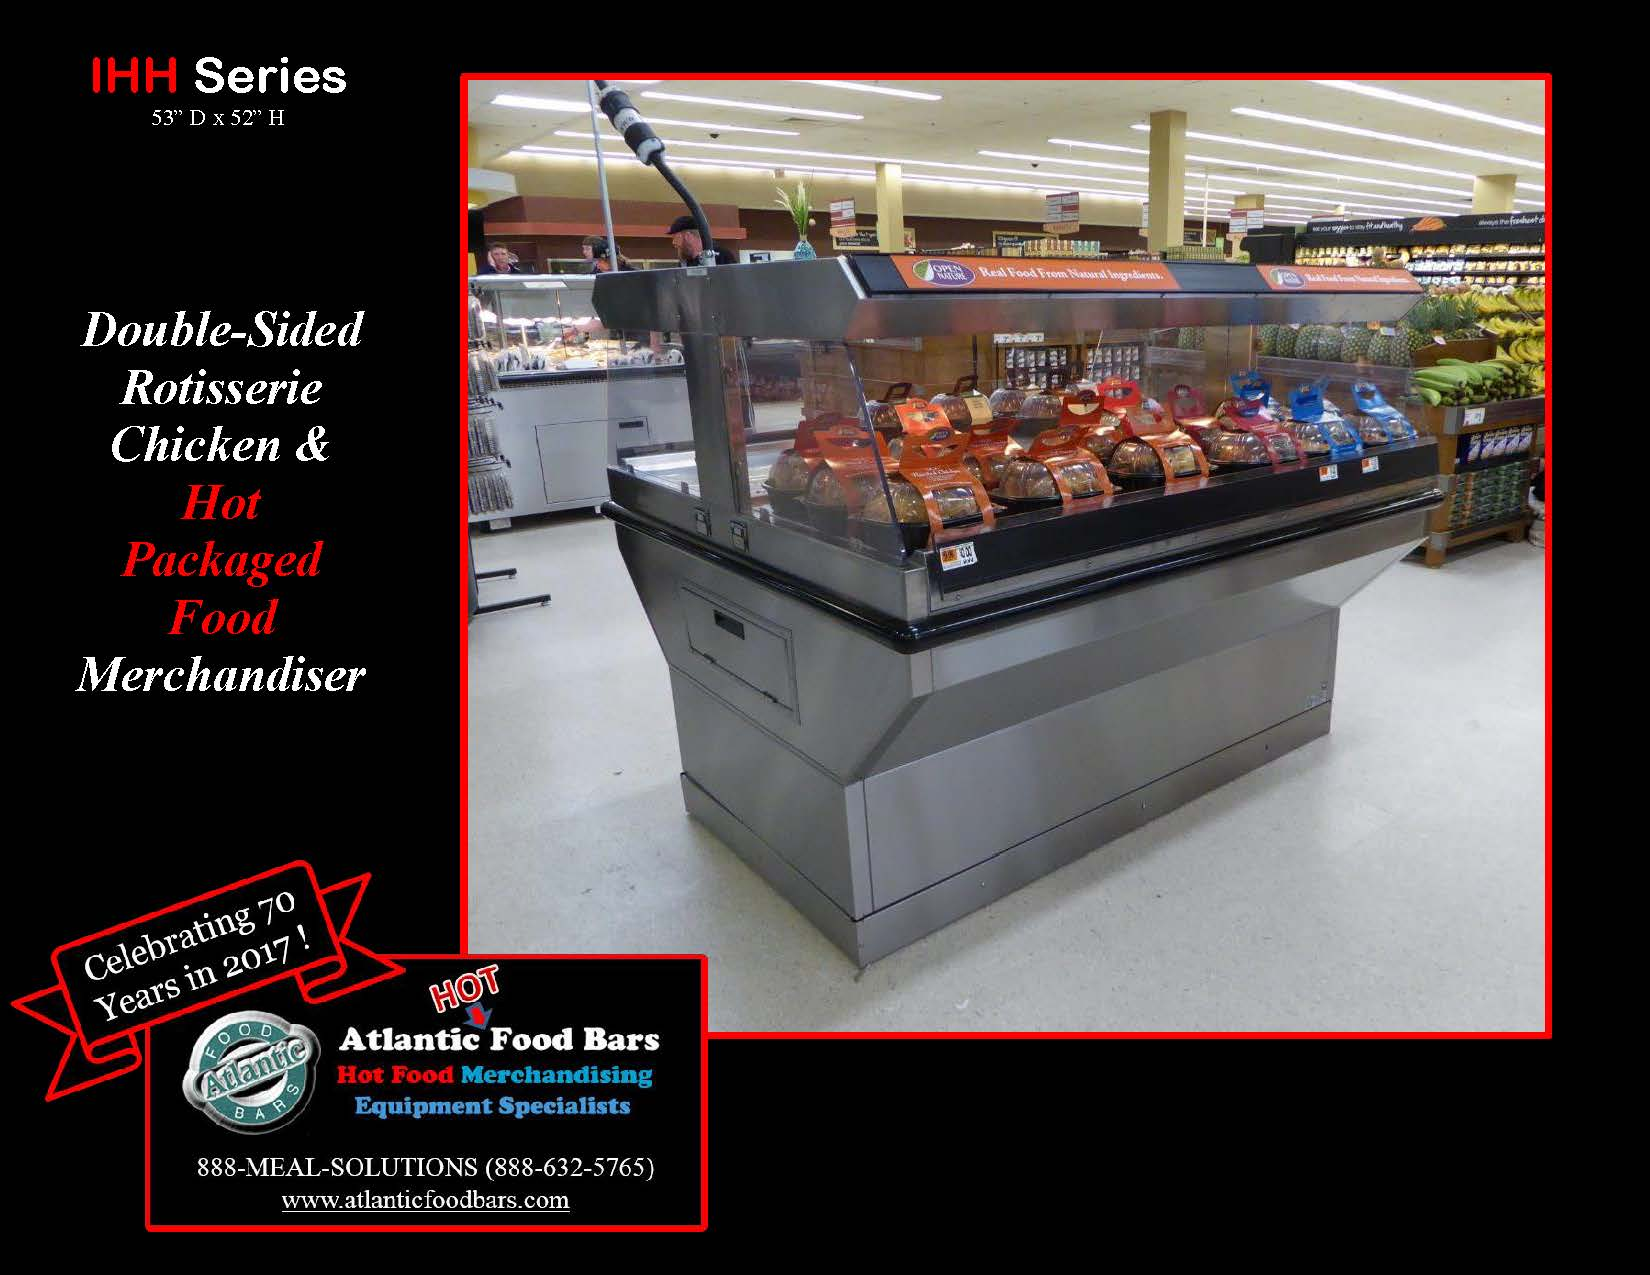 Atlantic Food Bars - Double-Sided Rotisserie Chicken & Hot Packaged Food Merchandiser - IHH